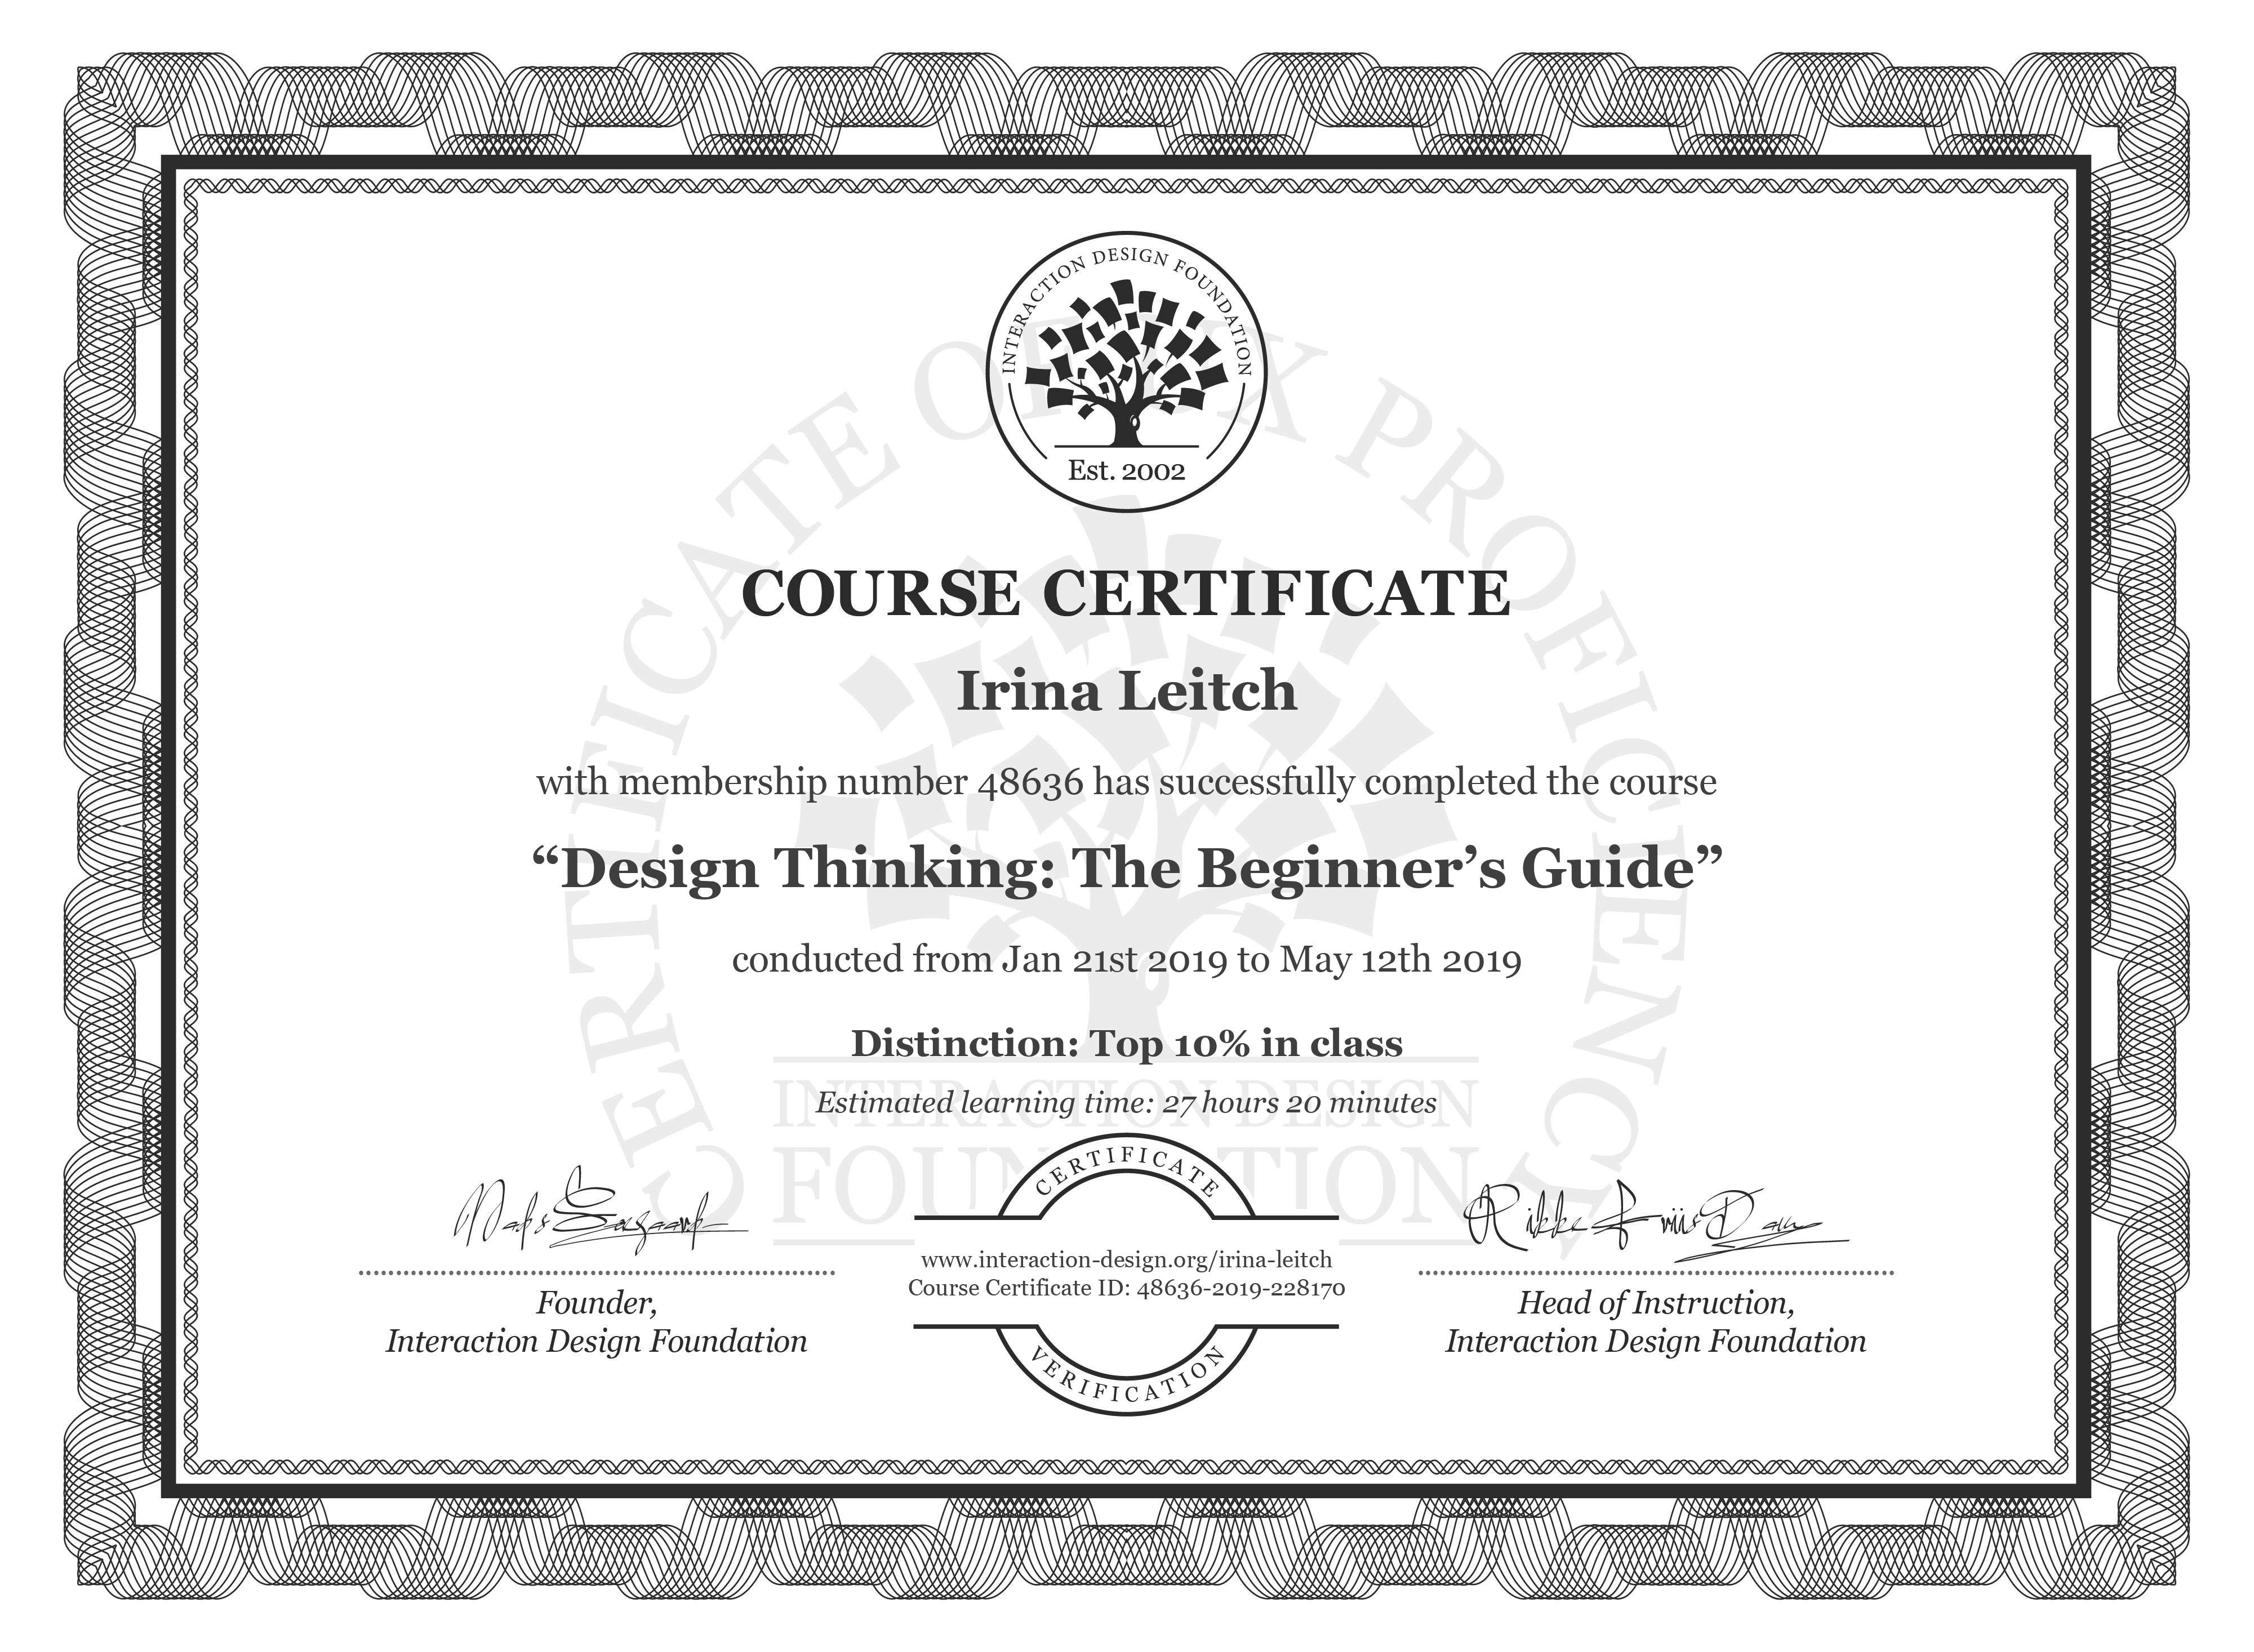 Irina Leitch's Course Certificate: Design Thinking: The Beginner's Guide